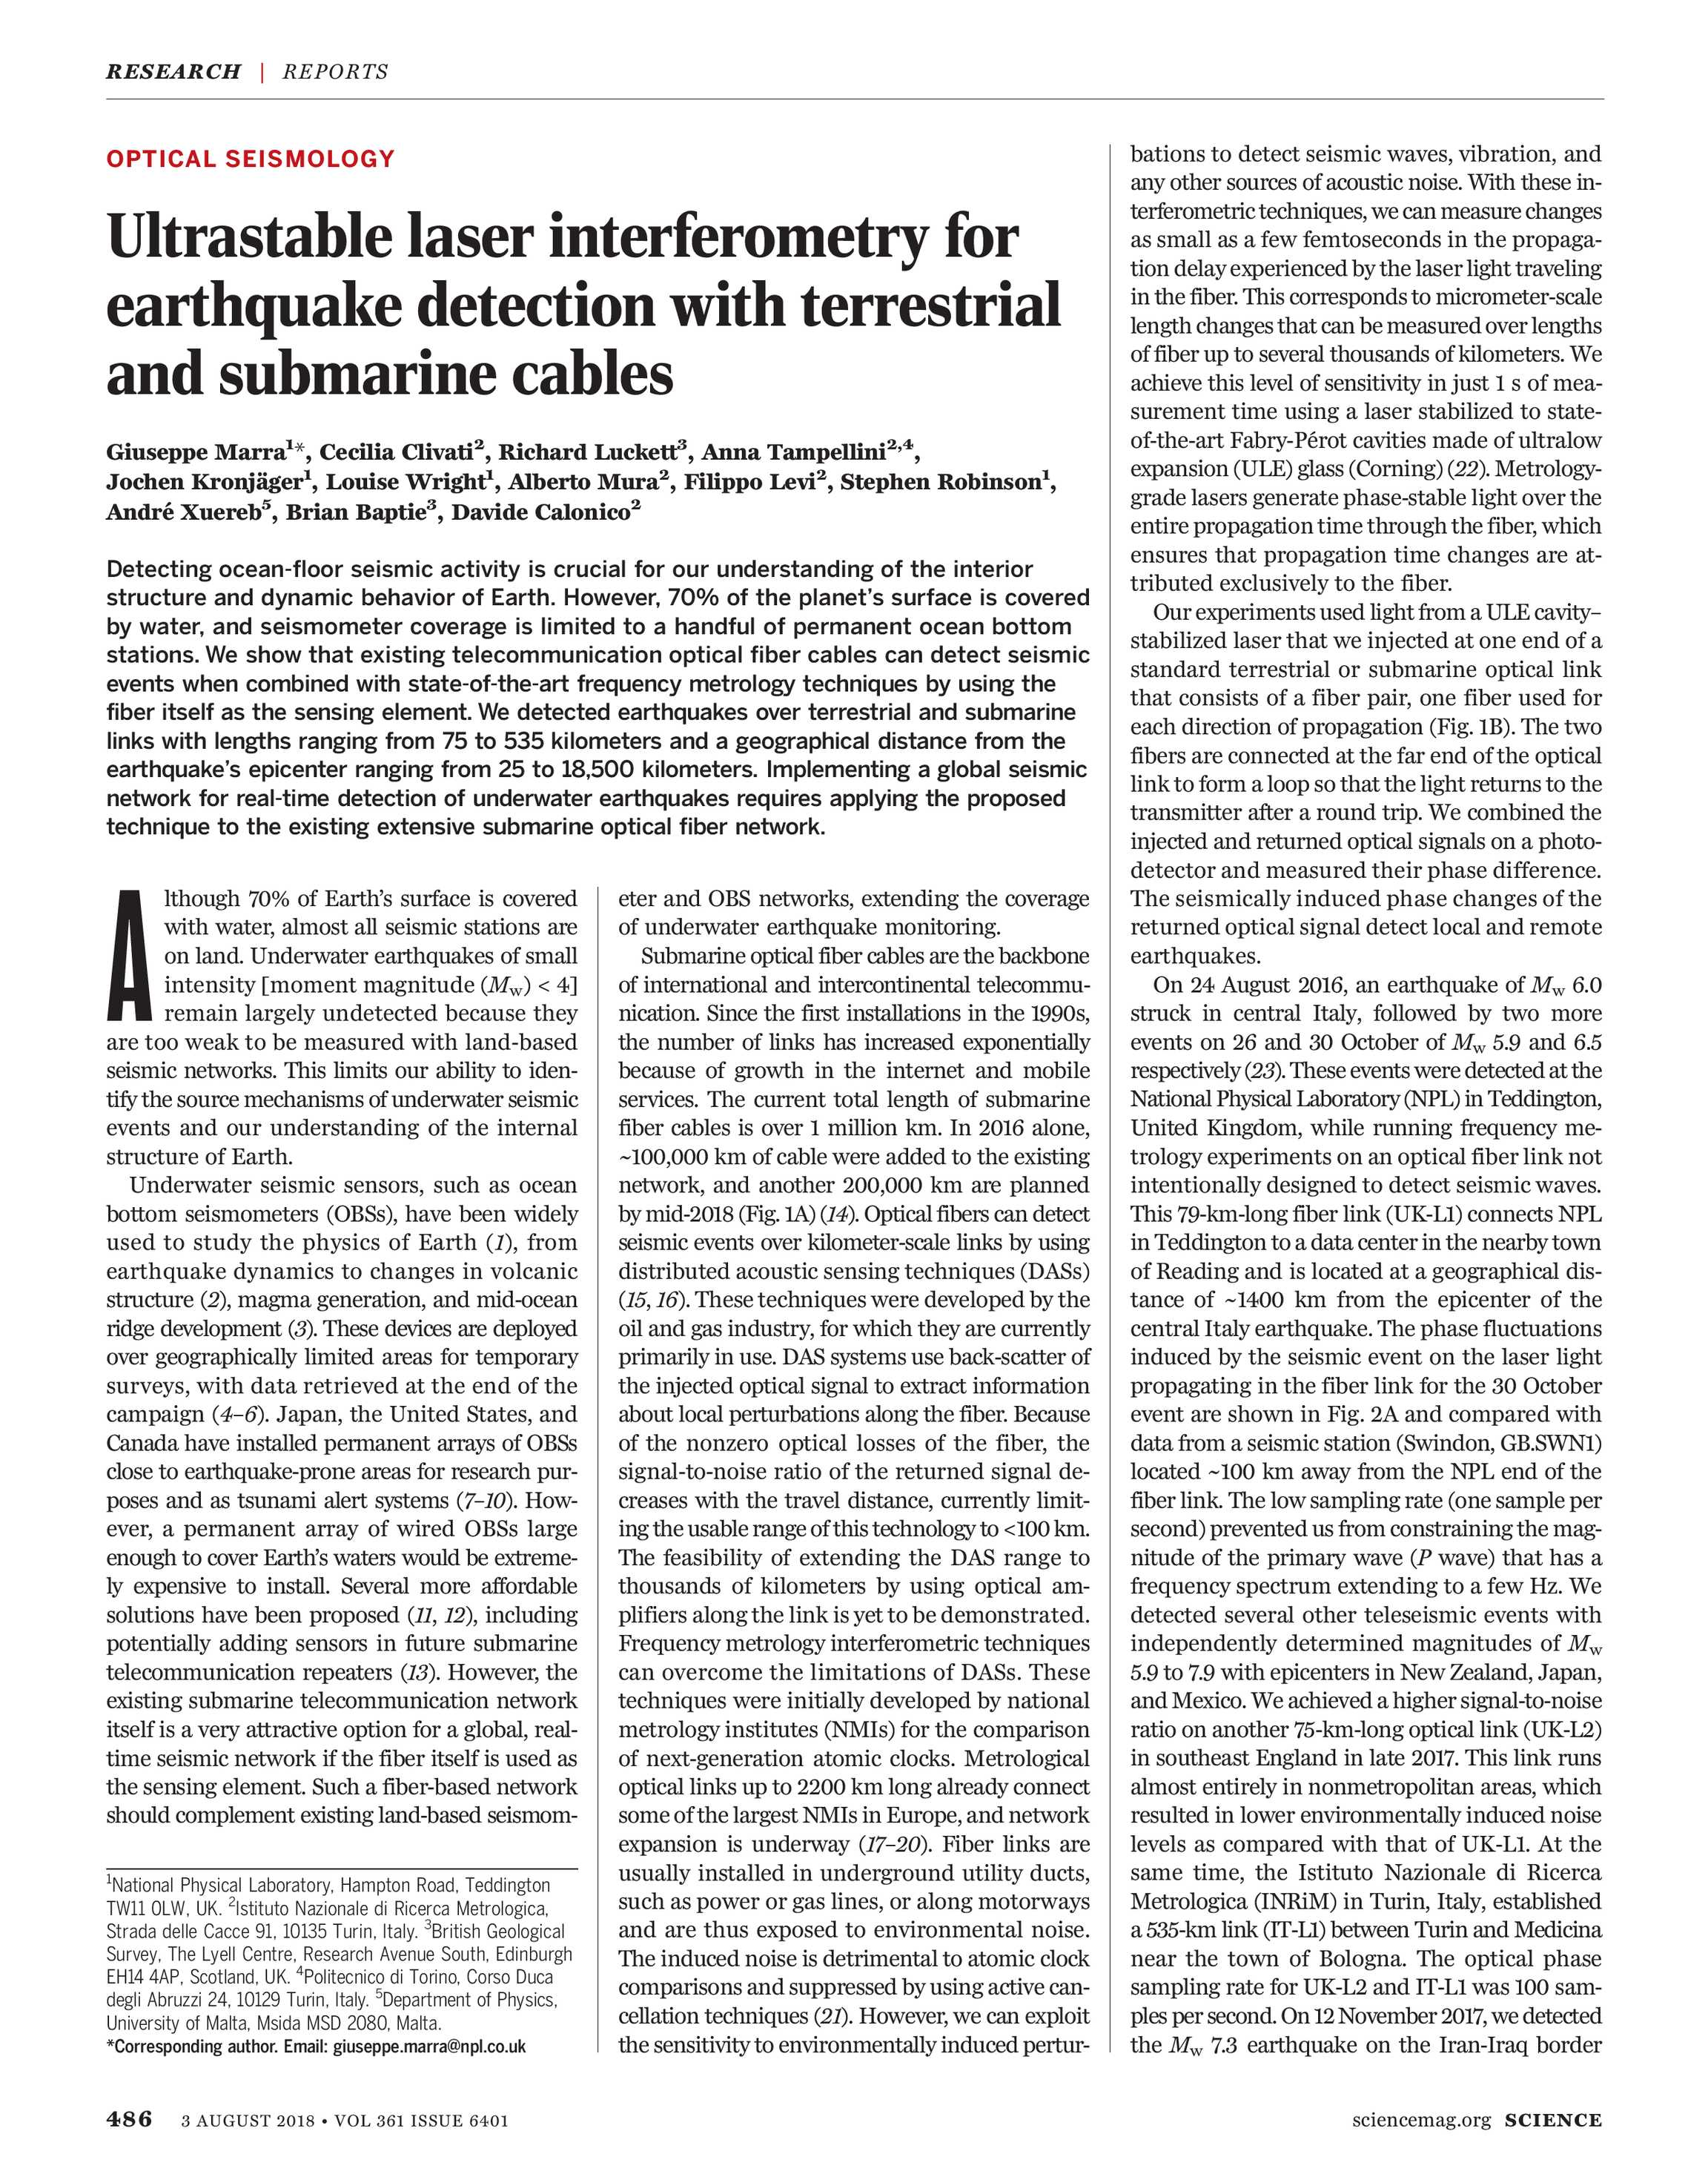 Science Magazine - August 3, 2018 - page 486